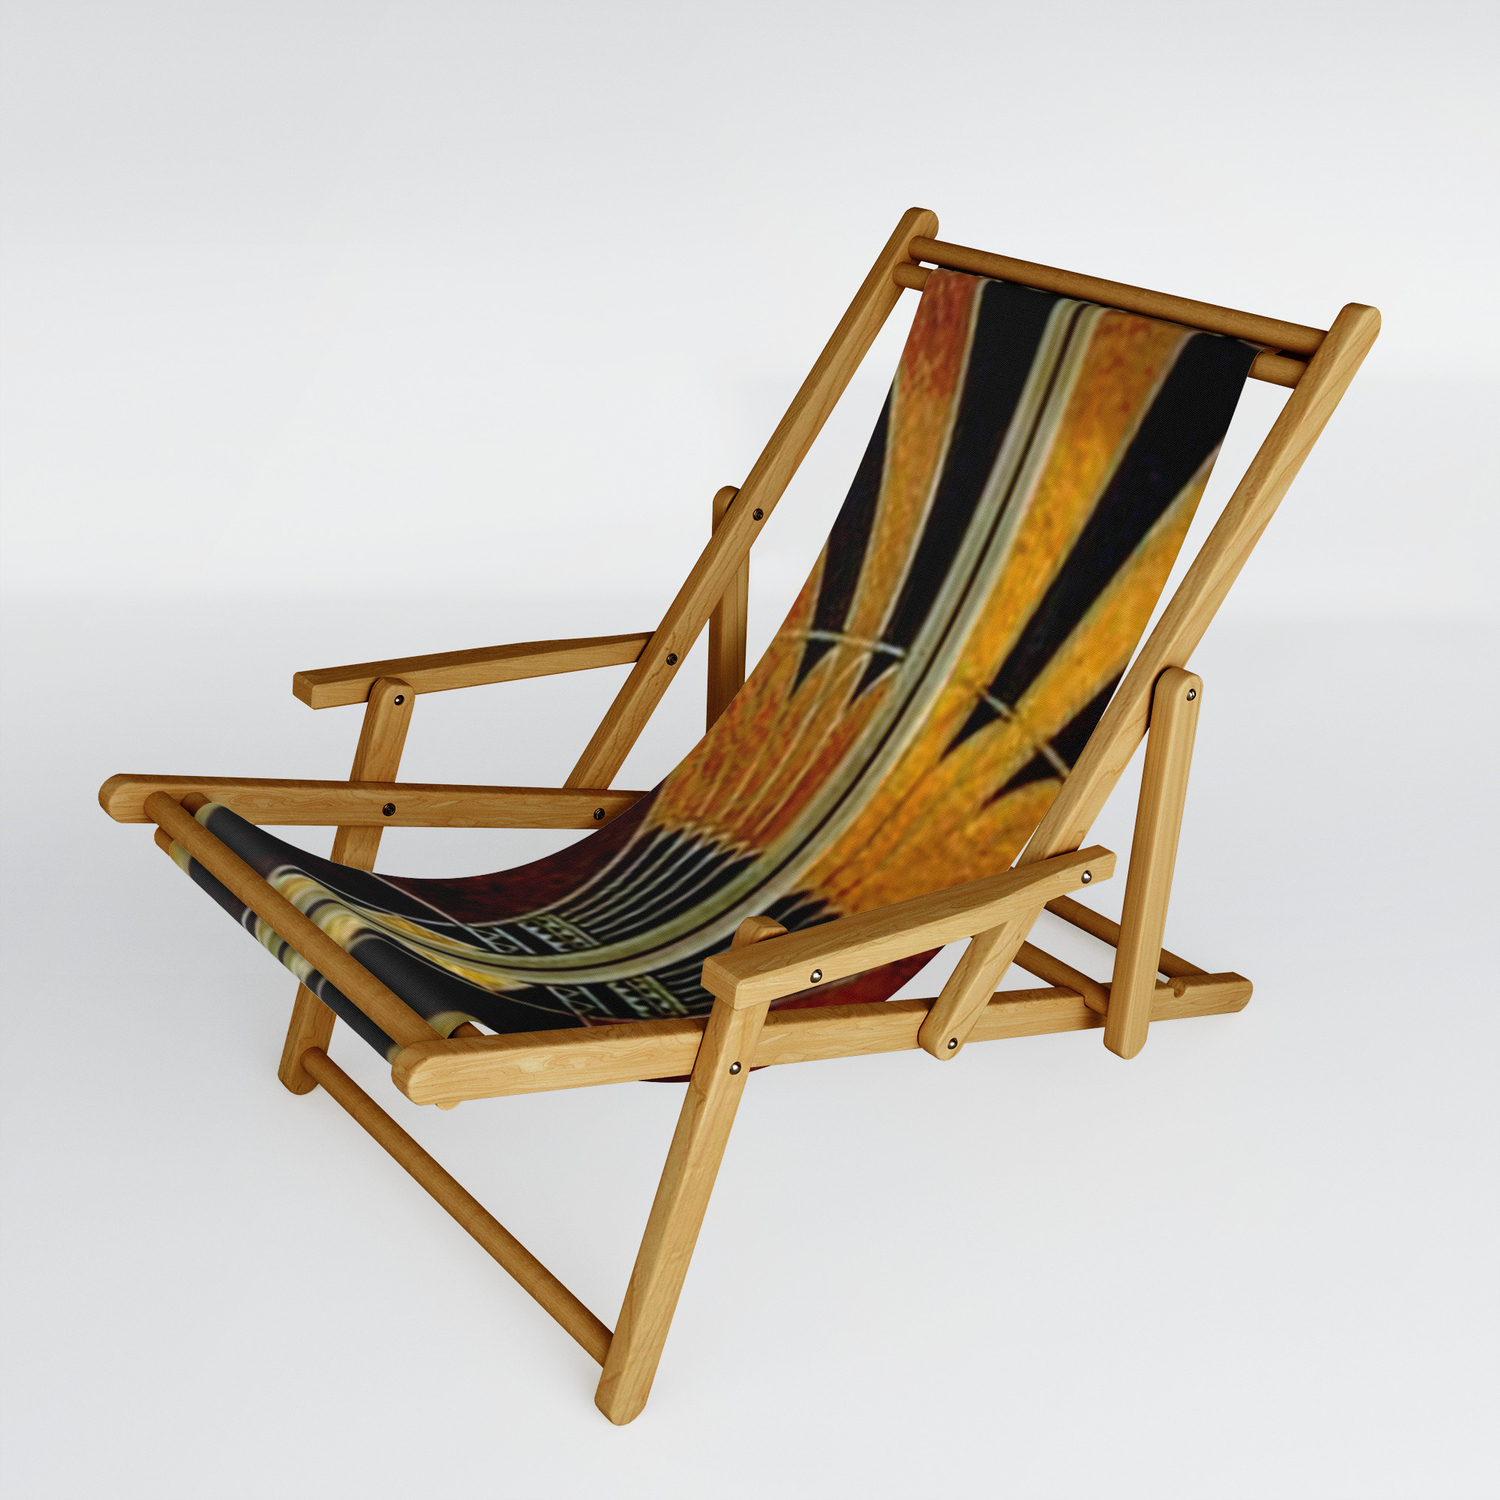 Outdoor Wood Sling Chairs With Regard To Famous Art Deco Wood Sling Chairhealinglove (View 17 of 25)